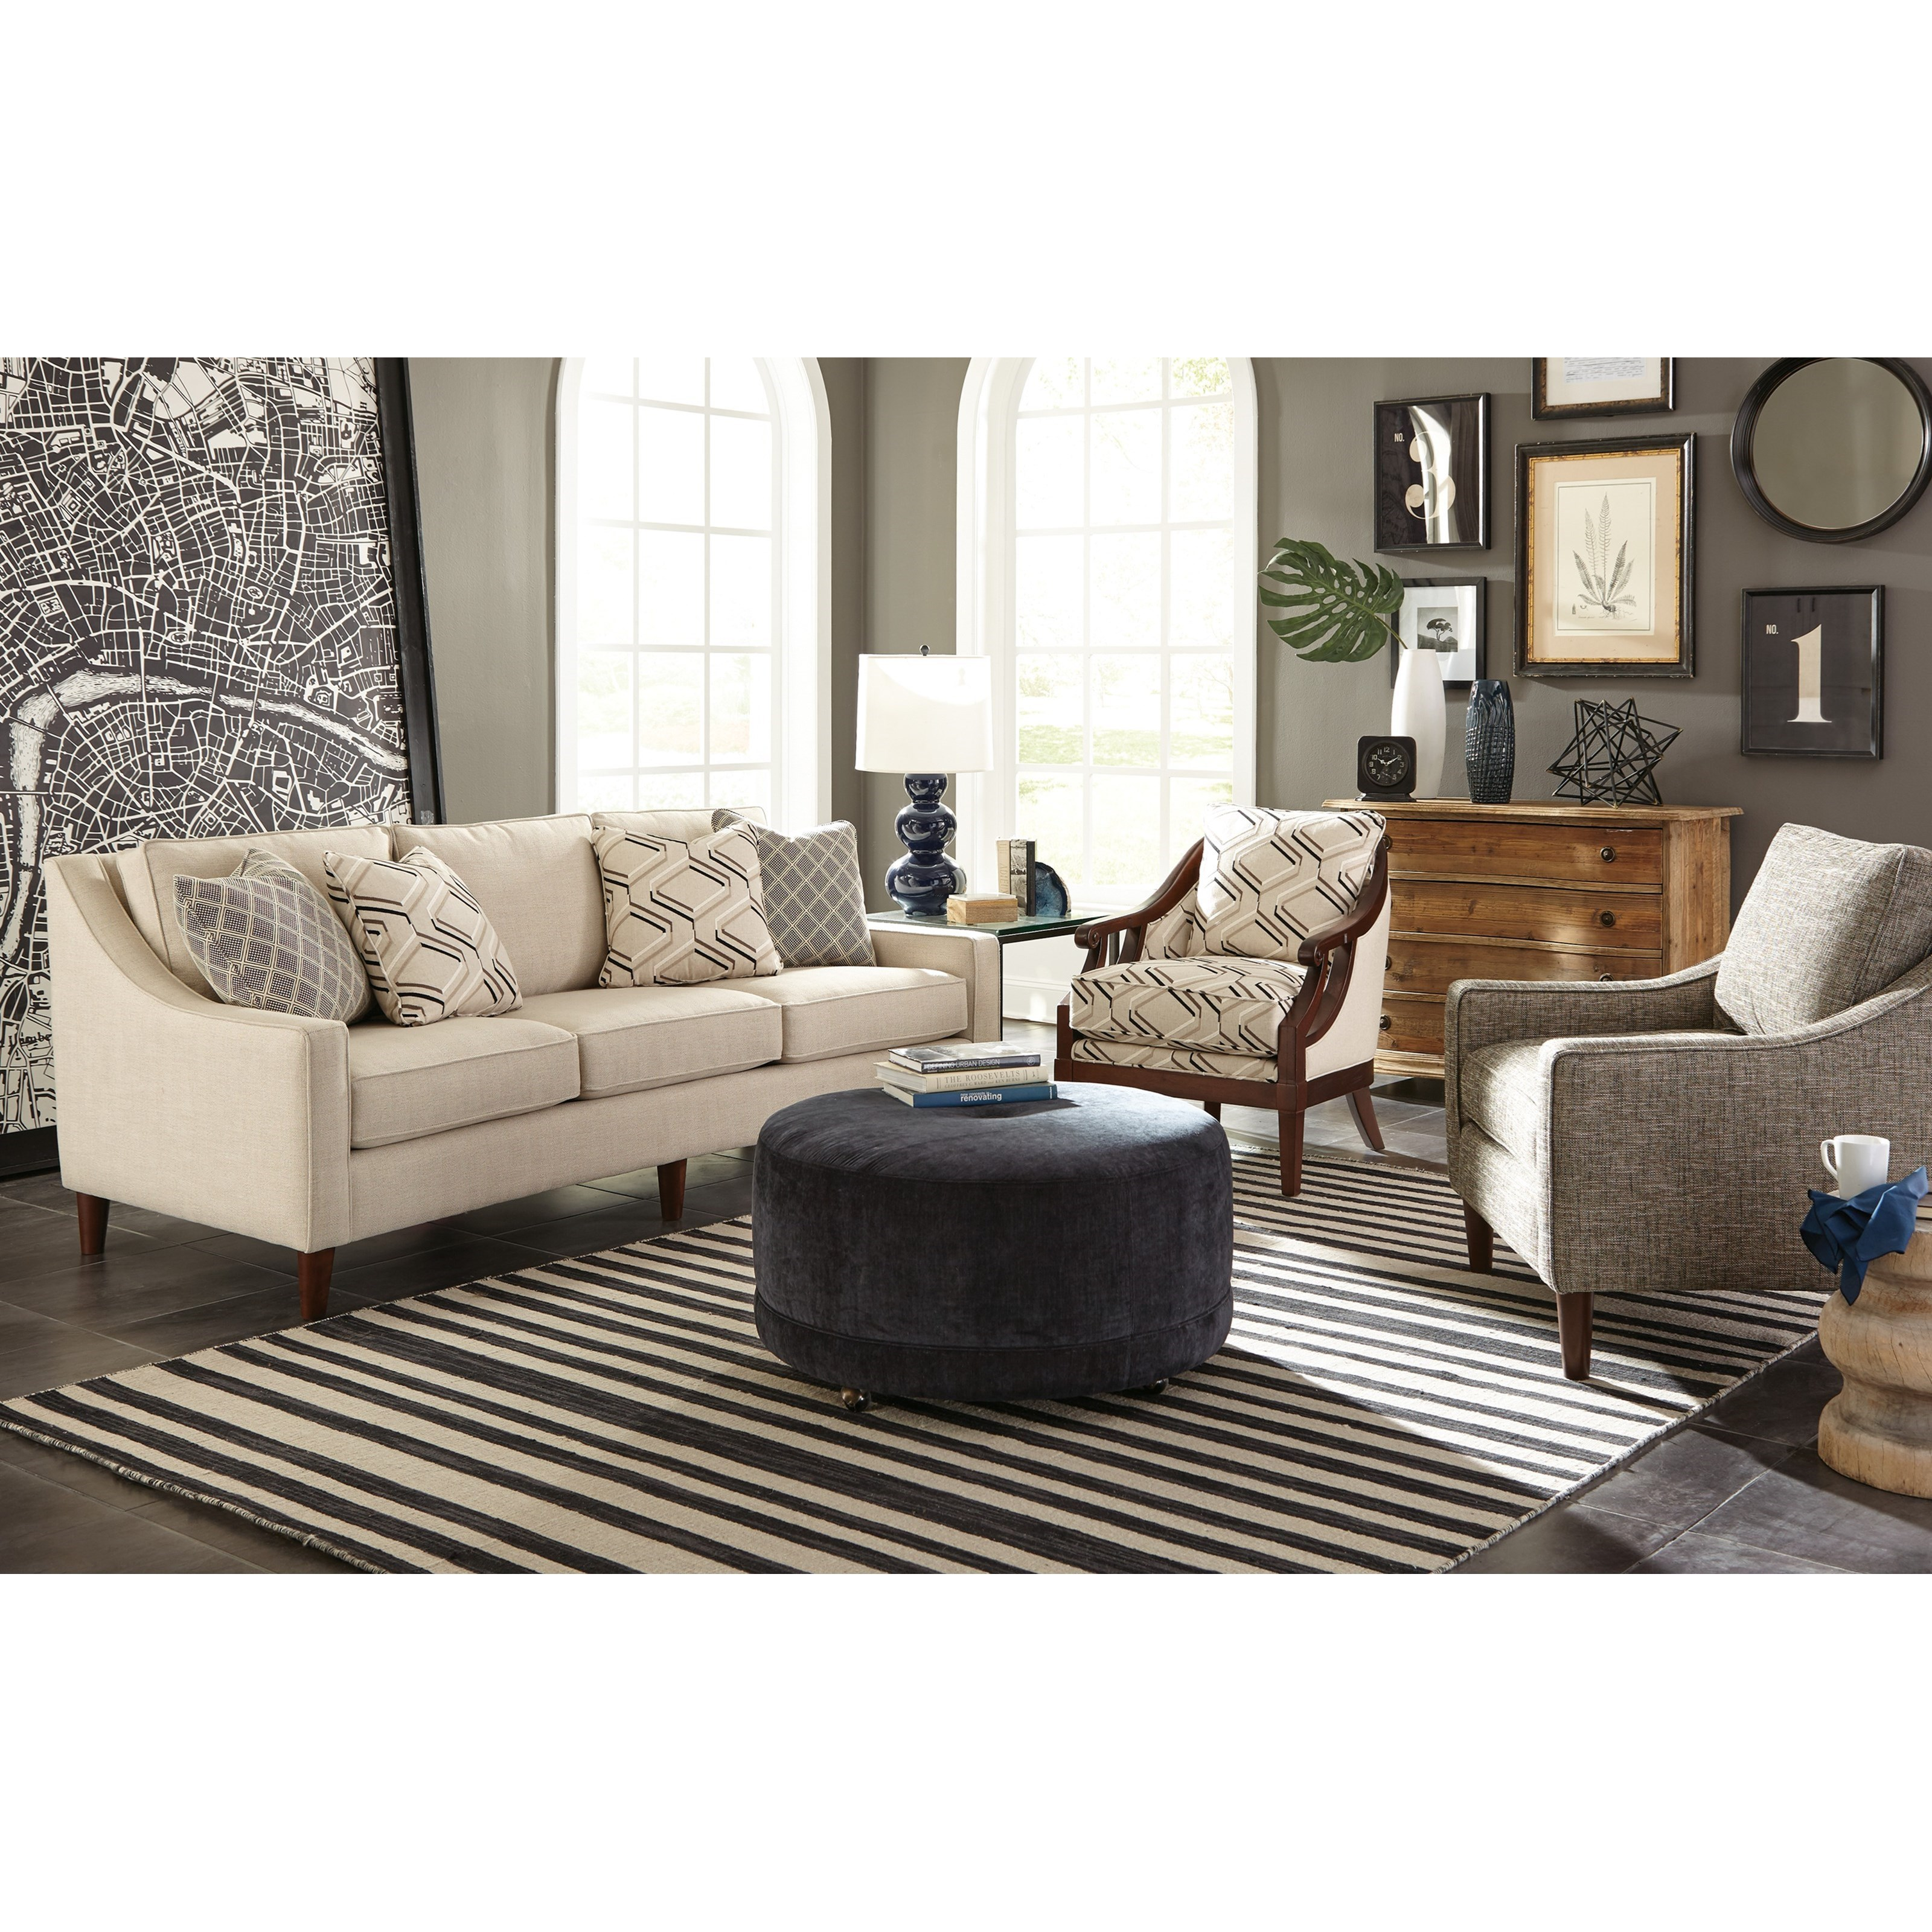 Craftmaster Accent Ottomans Round Contemporary Ottoman With Casters Miskelly Furniture Ottomans